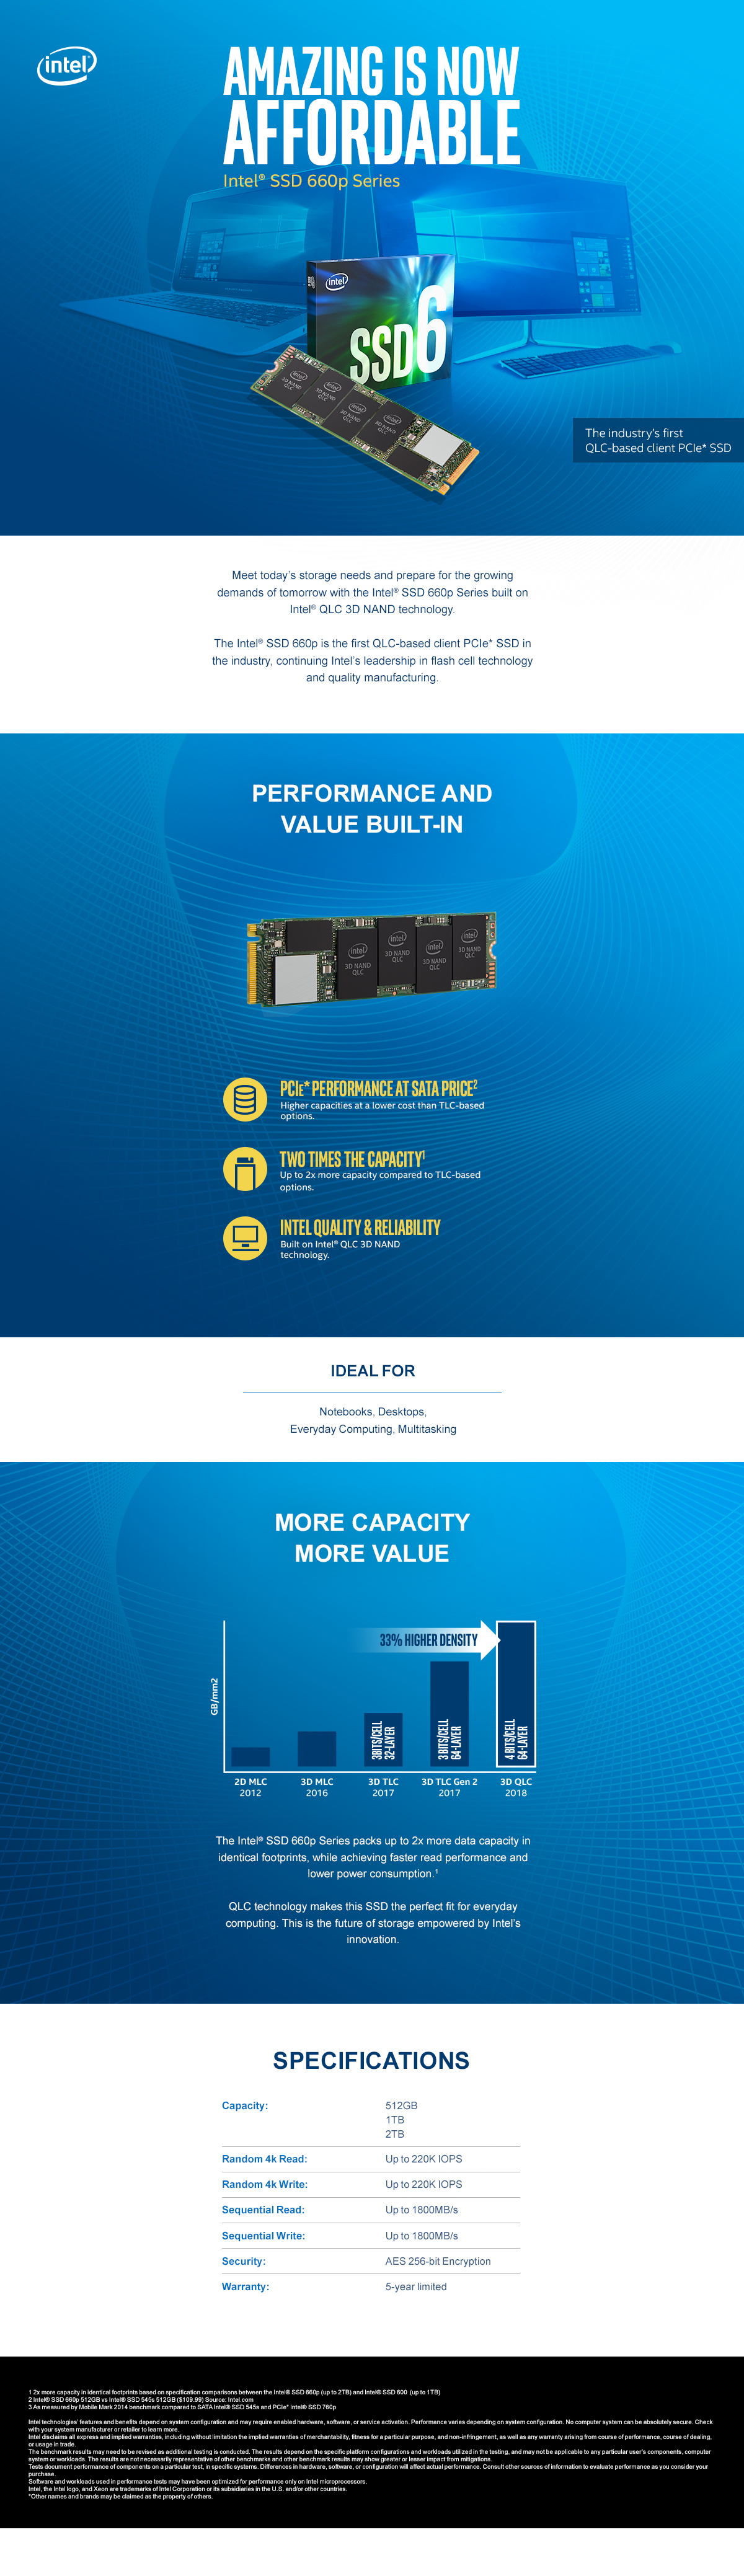 FINAL_INTL_SSD_660P_Series_Newegg_Page_Final.jpg